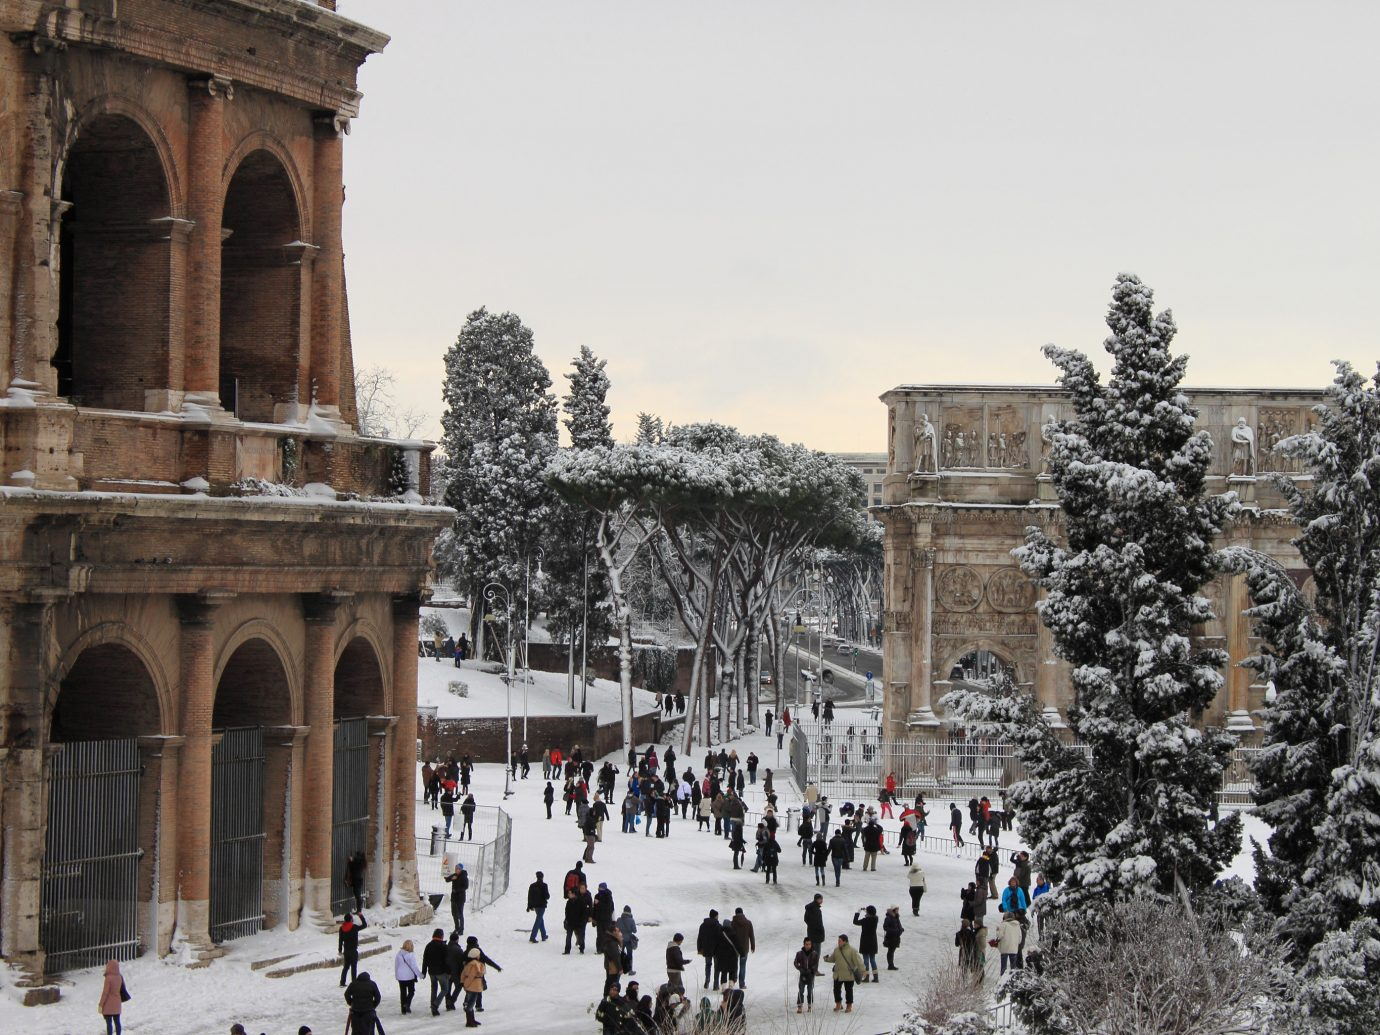 Boutique Hotels Romance Trip Ideas outdoor building snow Winter tree tourist attraction people freezing City arch town square sky palace plaza tourism ancient history history stone facade old bastion colonnade crowd day